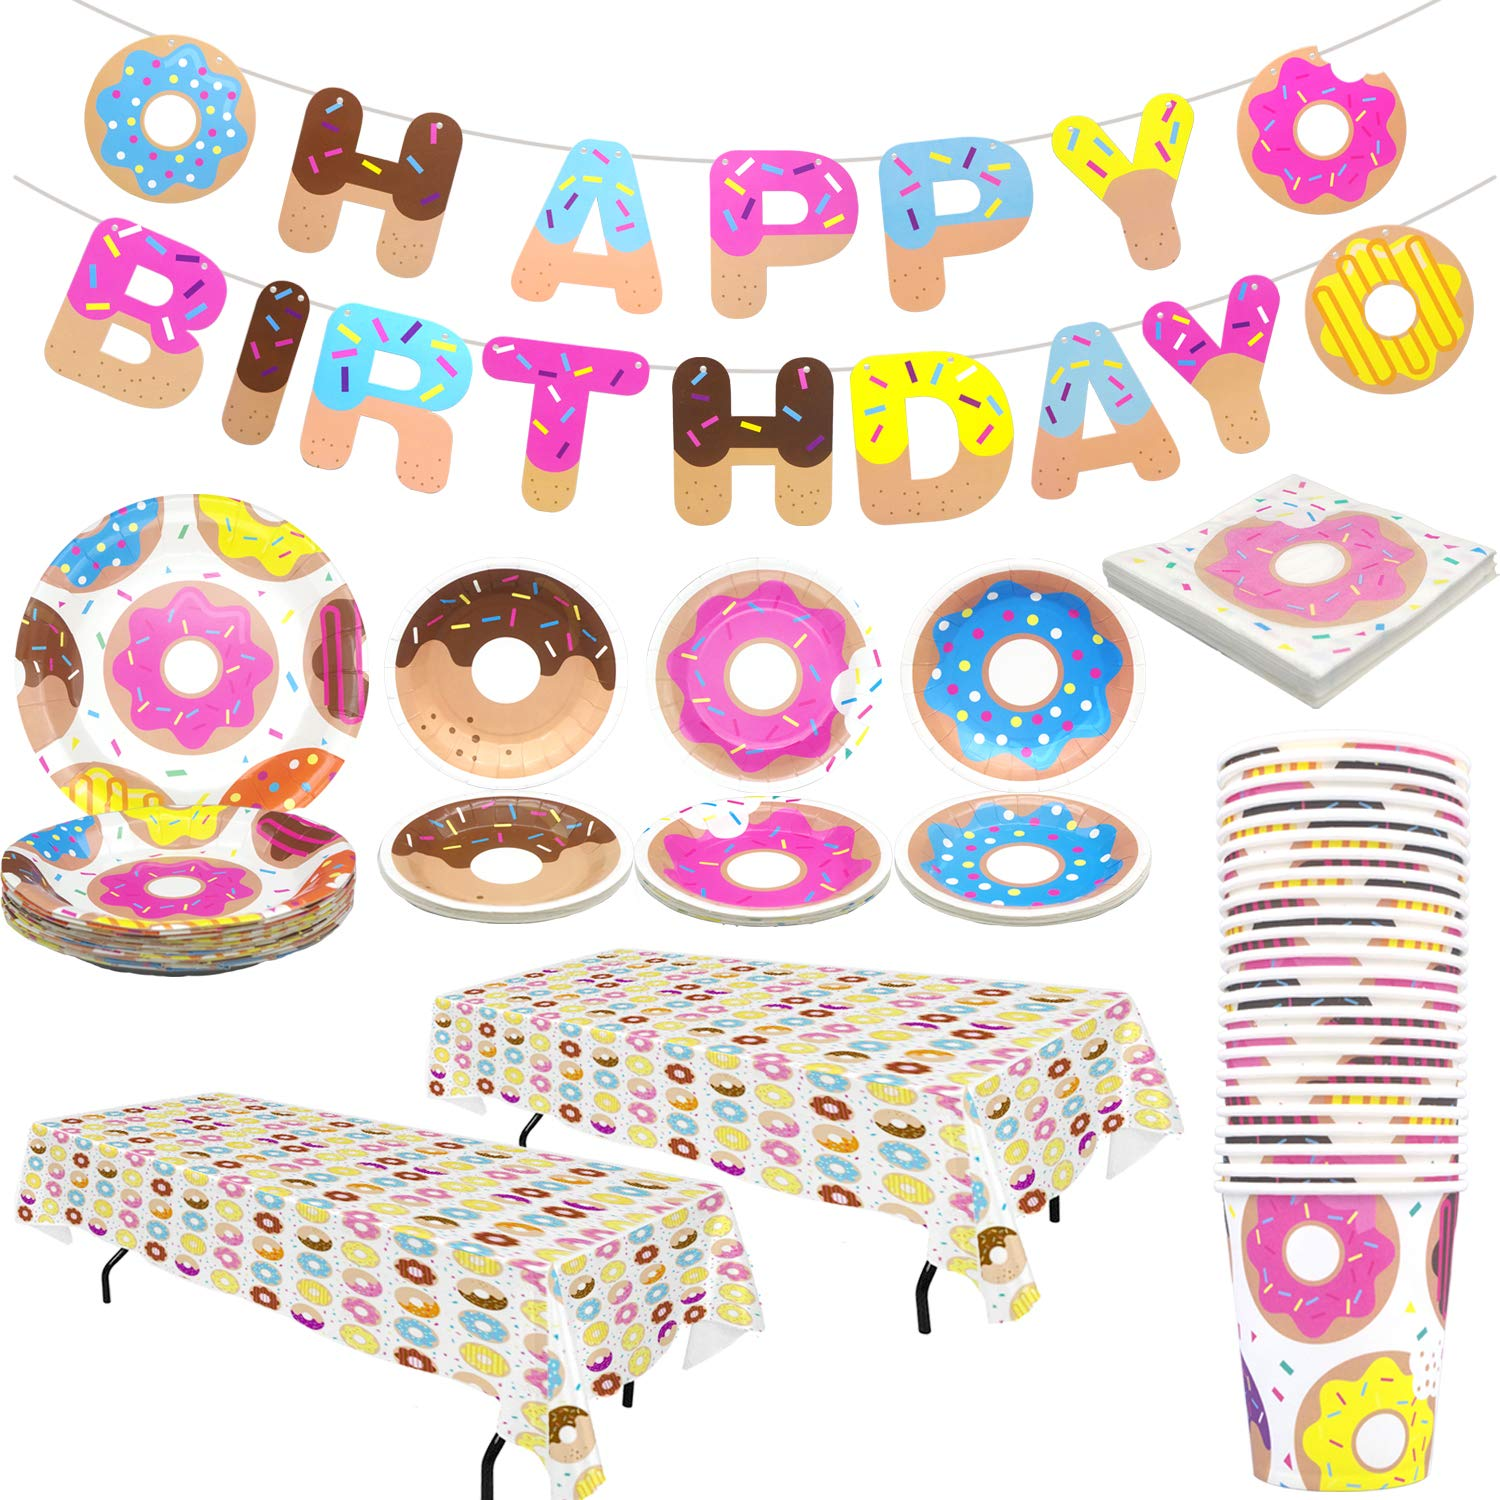 Pandecor Donut Party Supplies,99 Pieces Donut Party Disposable Tableware,Includes Happy Birthday Banner Tablecover Napkins Plates and Cups,Serves 24 by Pandecor